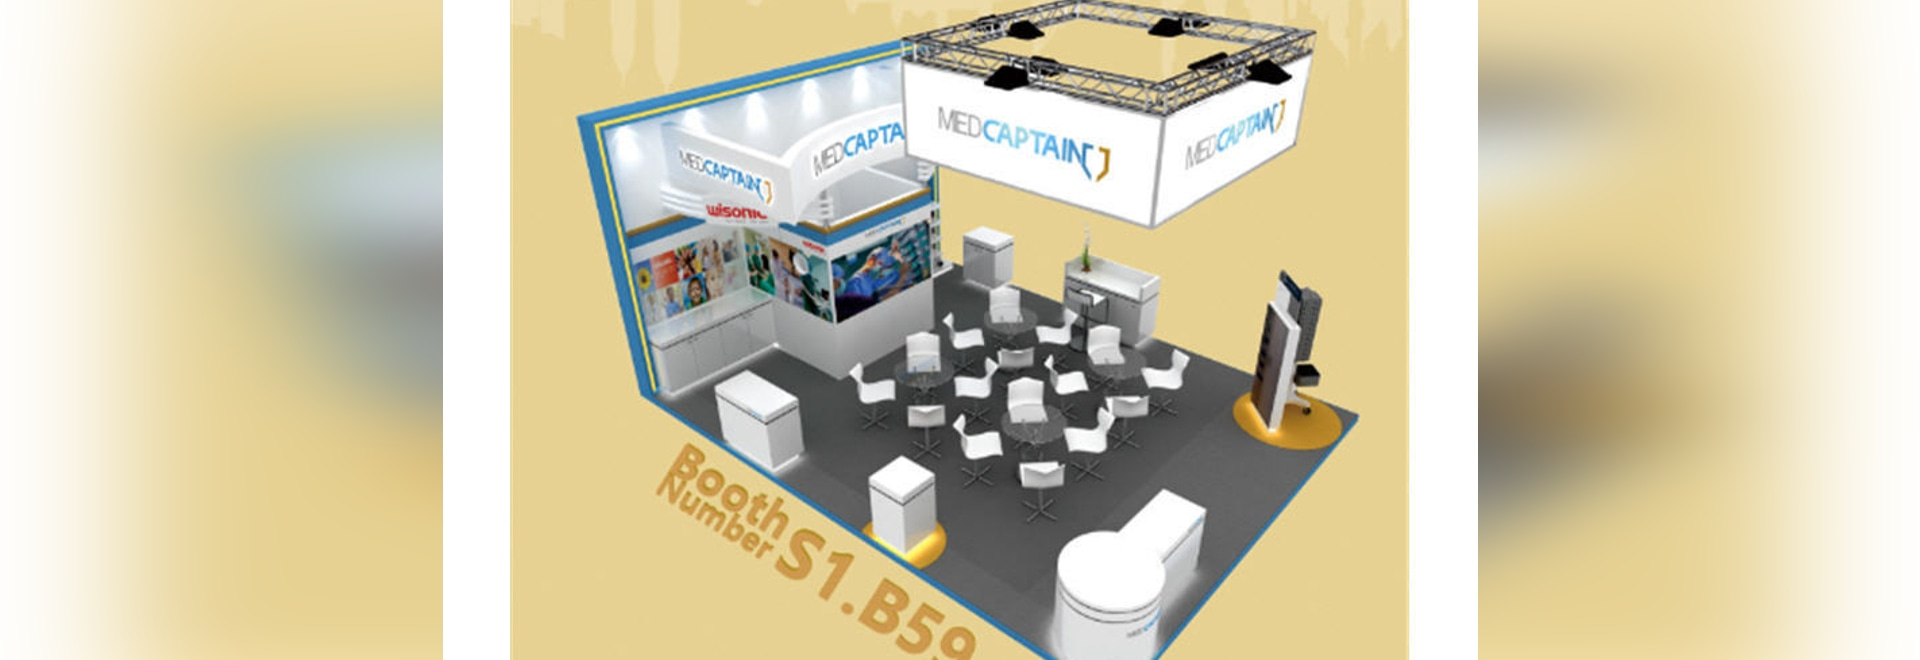 MEDCAPTAIN will join the ARAB HEALTH 2018, the world's leading Medical Exhibition in Dubai